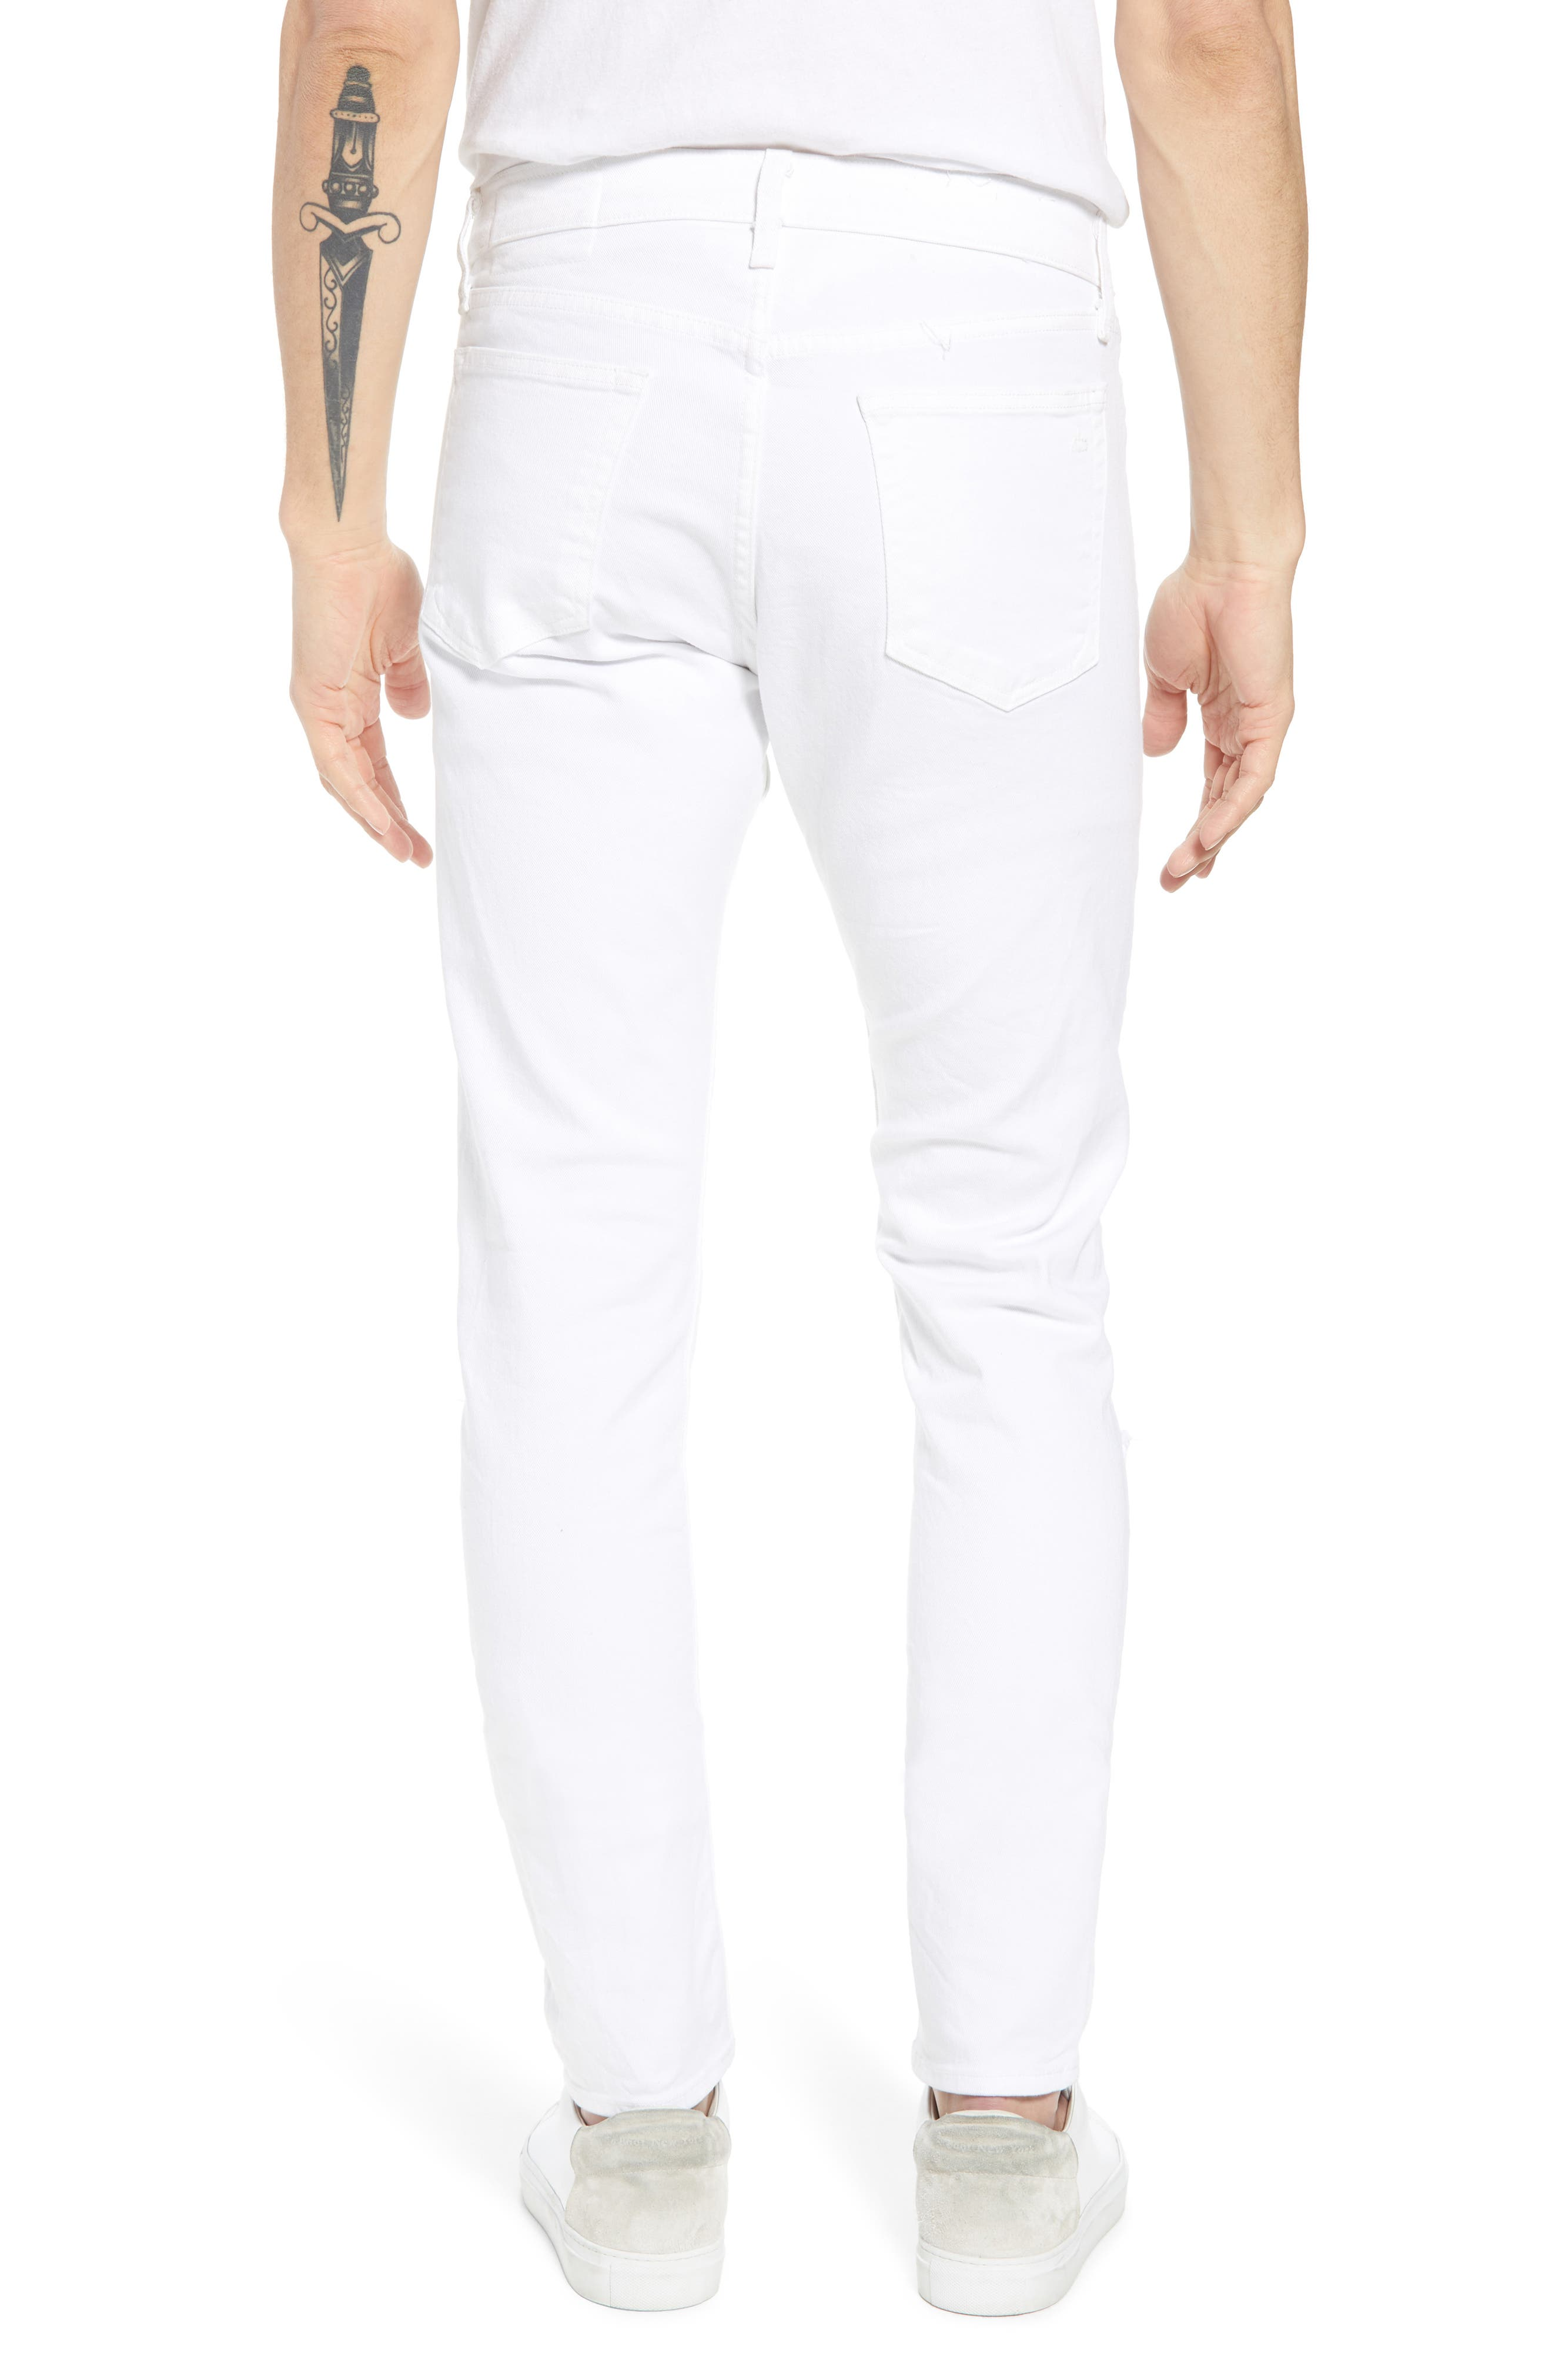 Fit 1 Skinny Fit Jeans,                             Alternate thumbnail 2, color,                             100